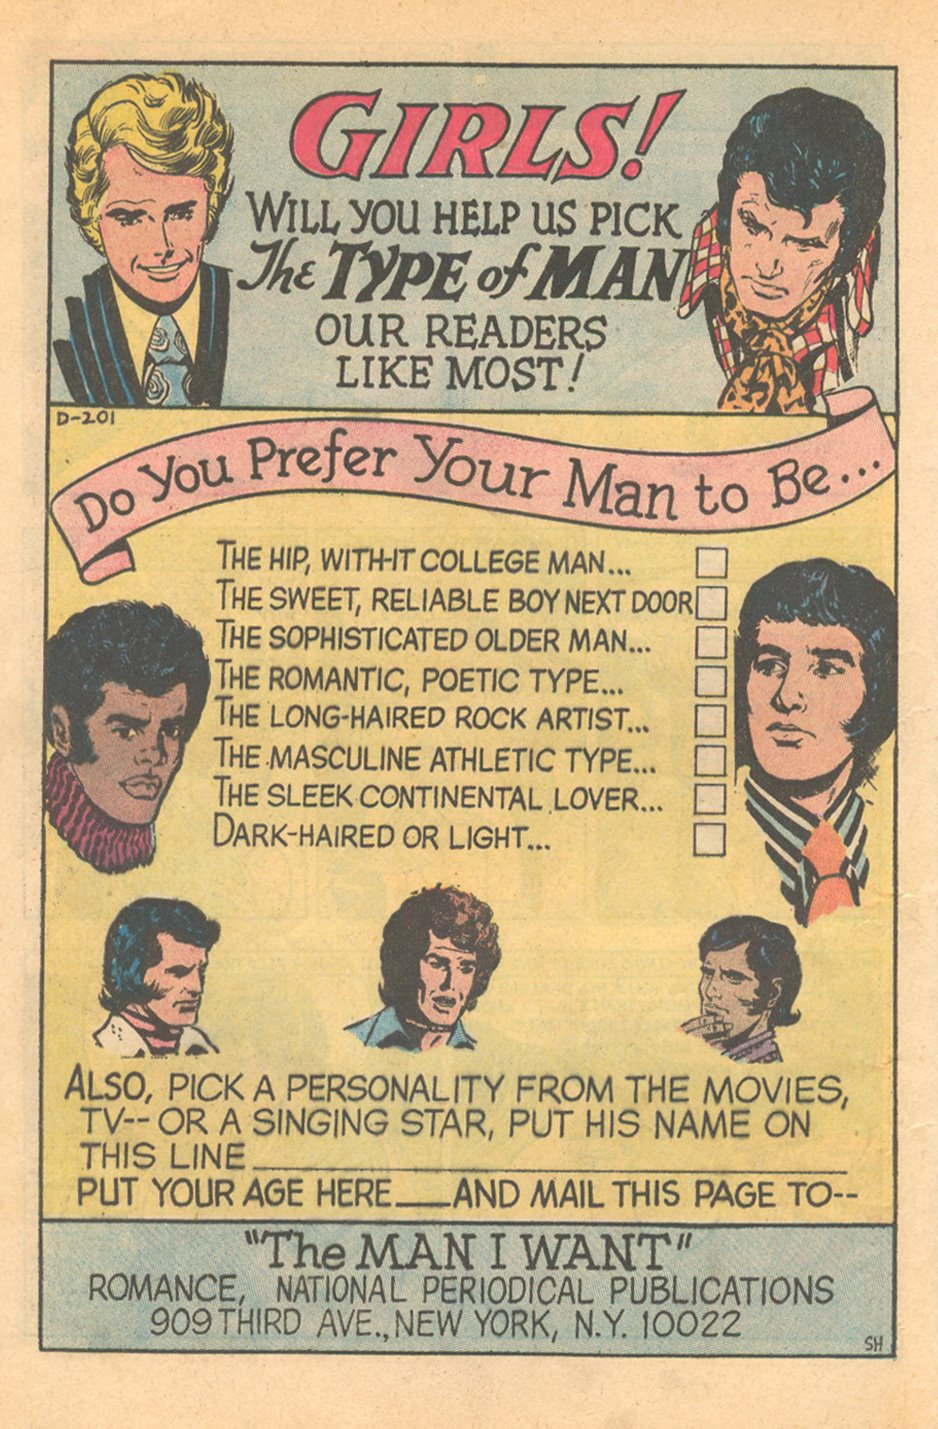 The Man I Want Romance Comic Book survey from DC Comics